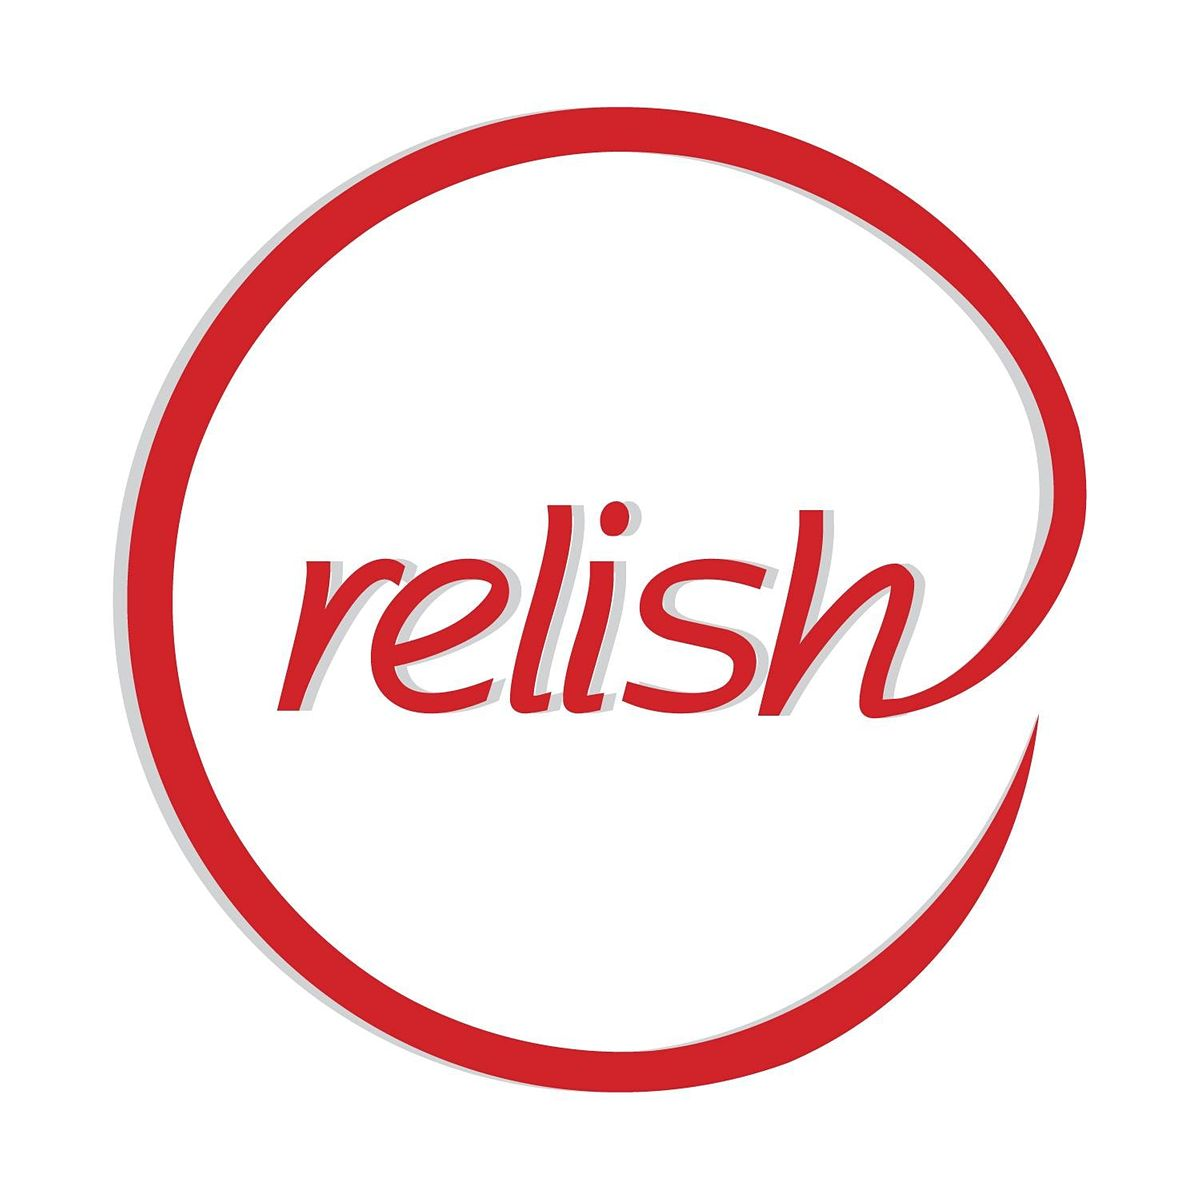 San Francisco Speed Dating | Singles Events | Who Do You Relish?, 14 August | Event in San Francisco | AllEvents.in